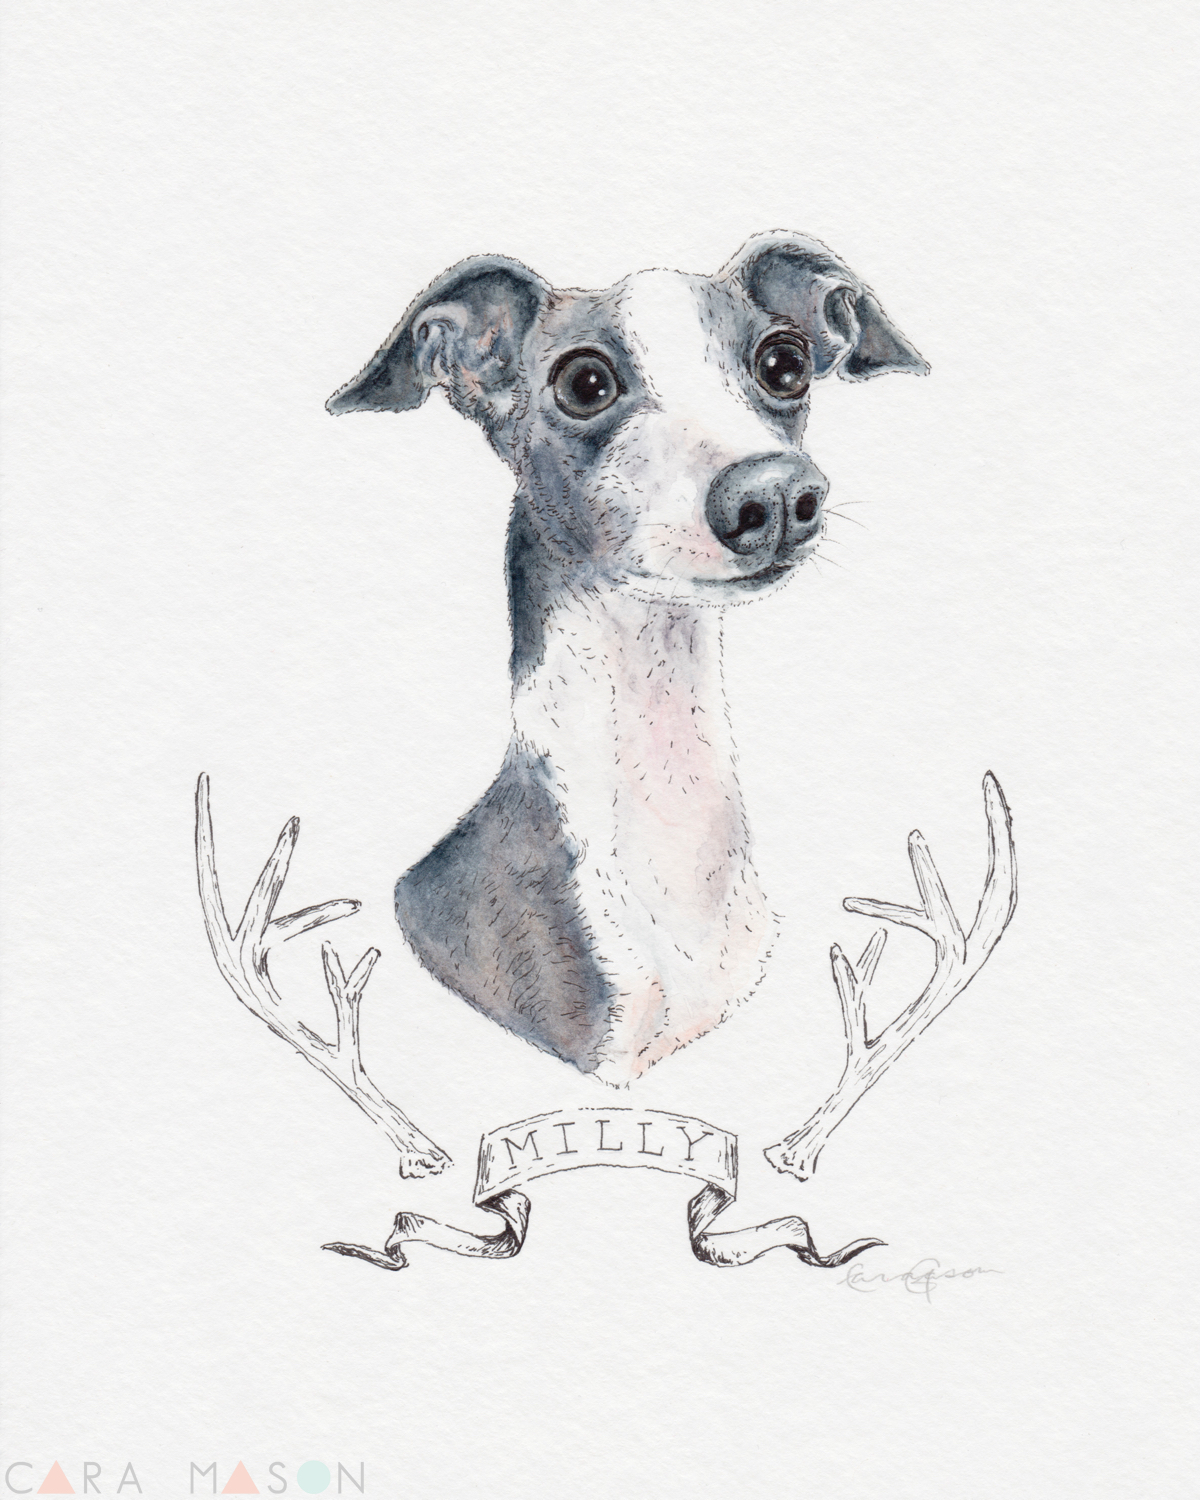 Besides my own darling dog portraits, I think Milly is my one of favorites. I've seen many of my furry face friends become beautiful watercolors through Cara's work.